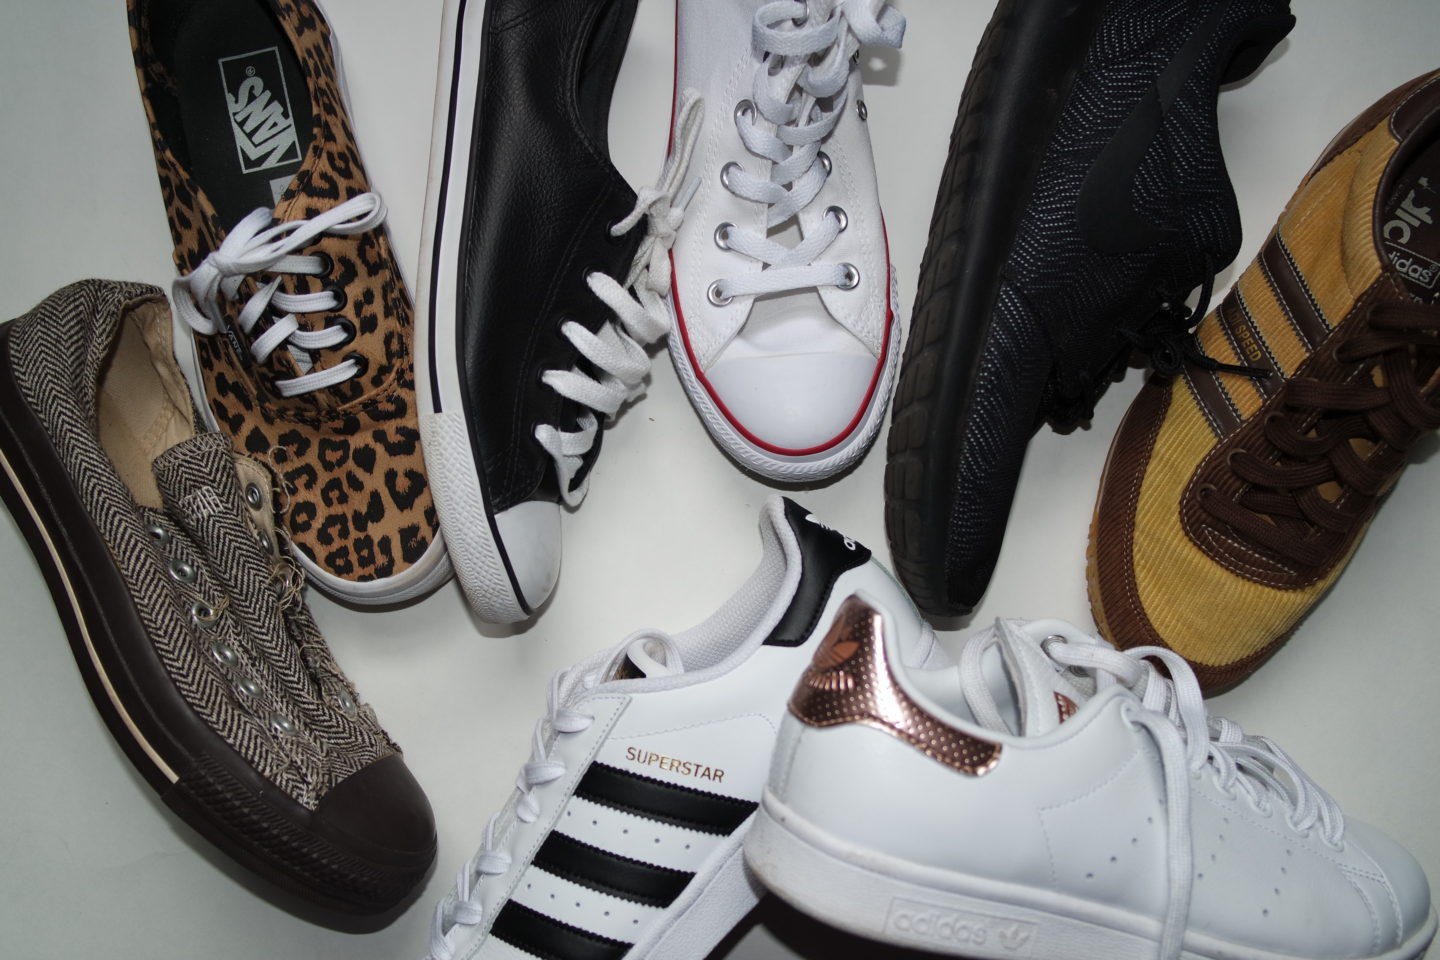 Why I Am Ditching The Heels For Sneakers